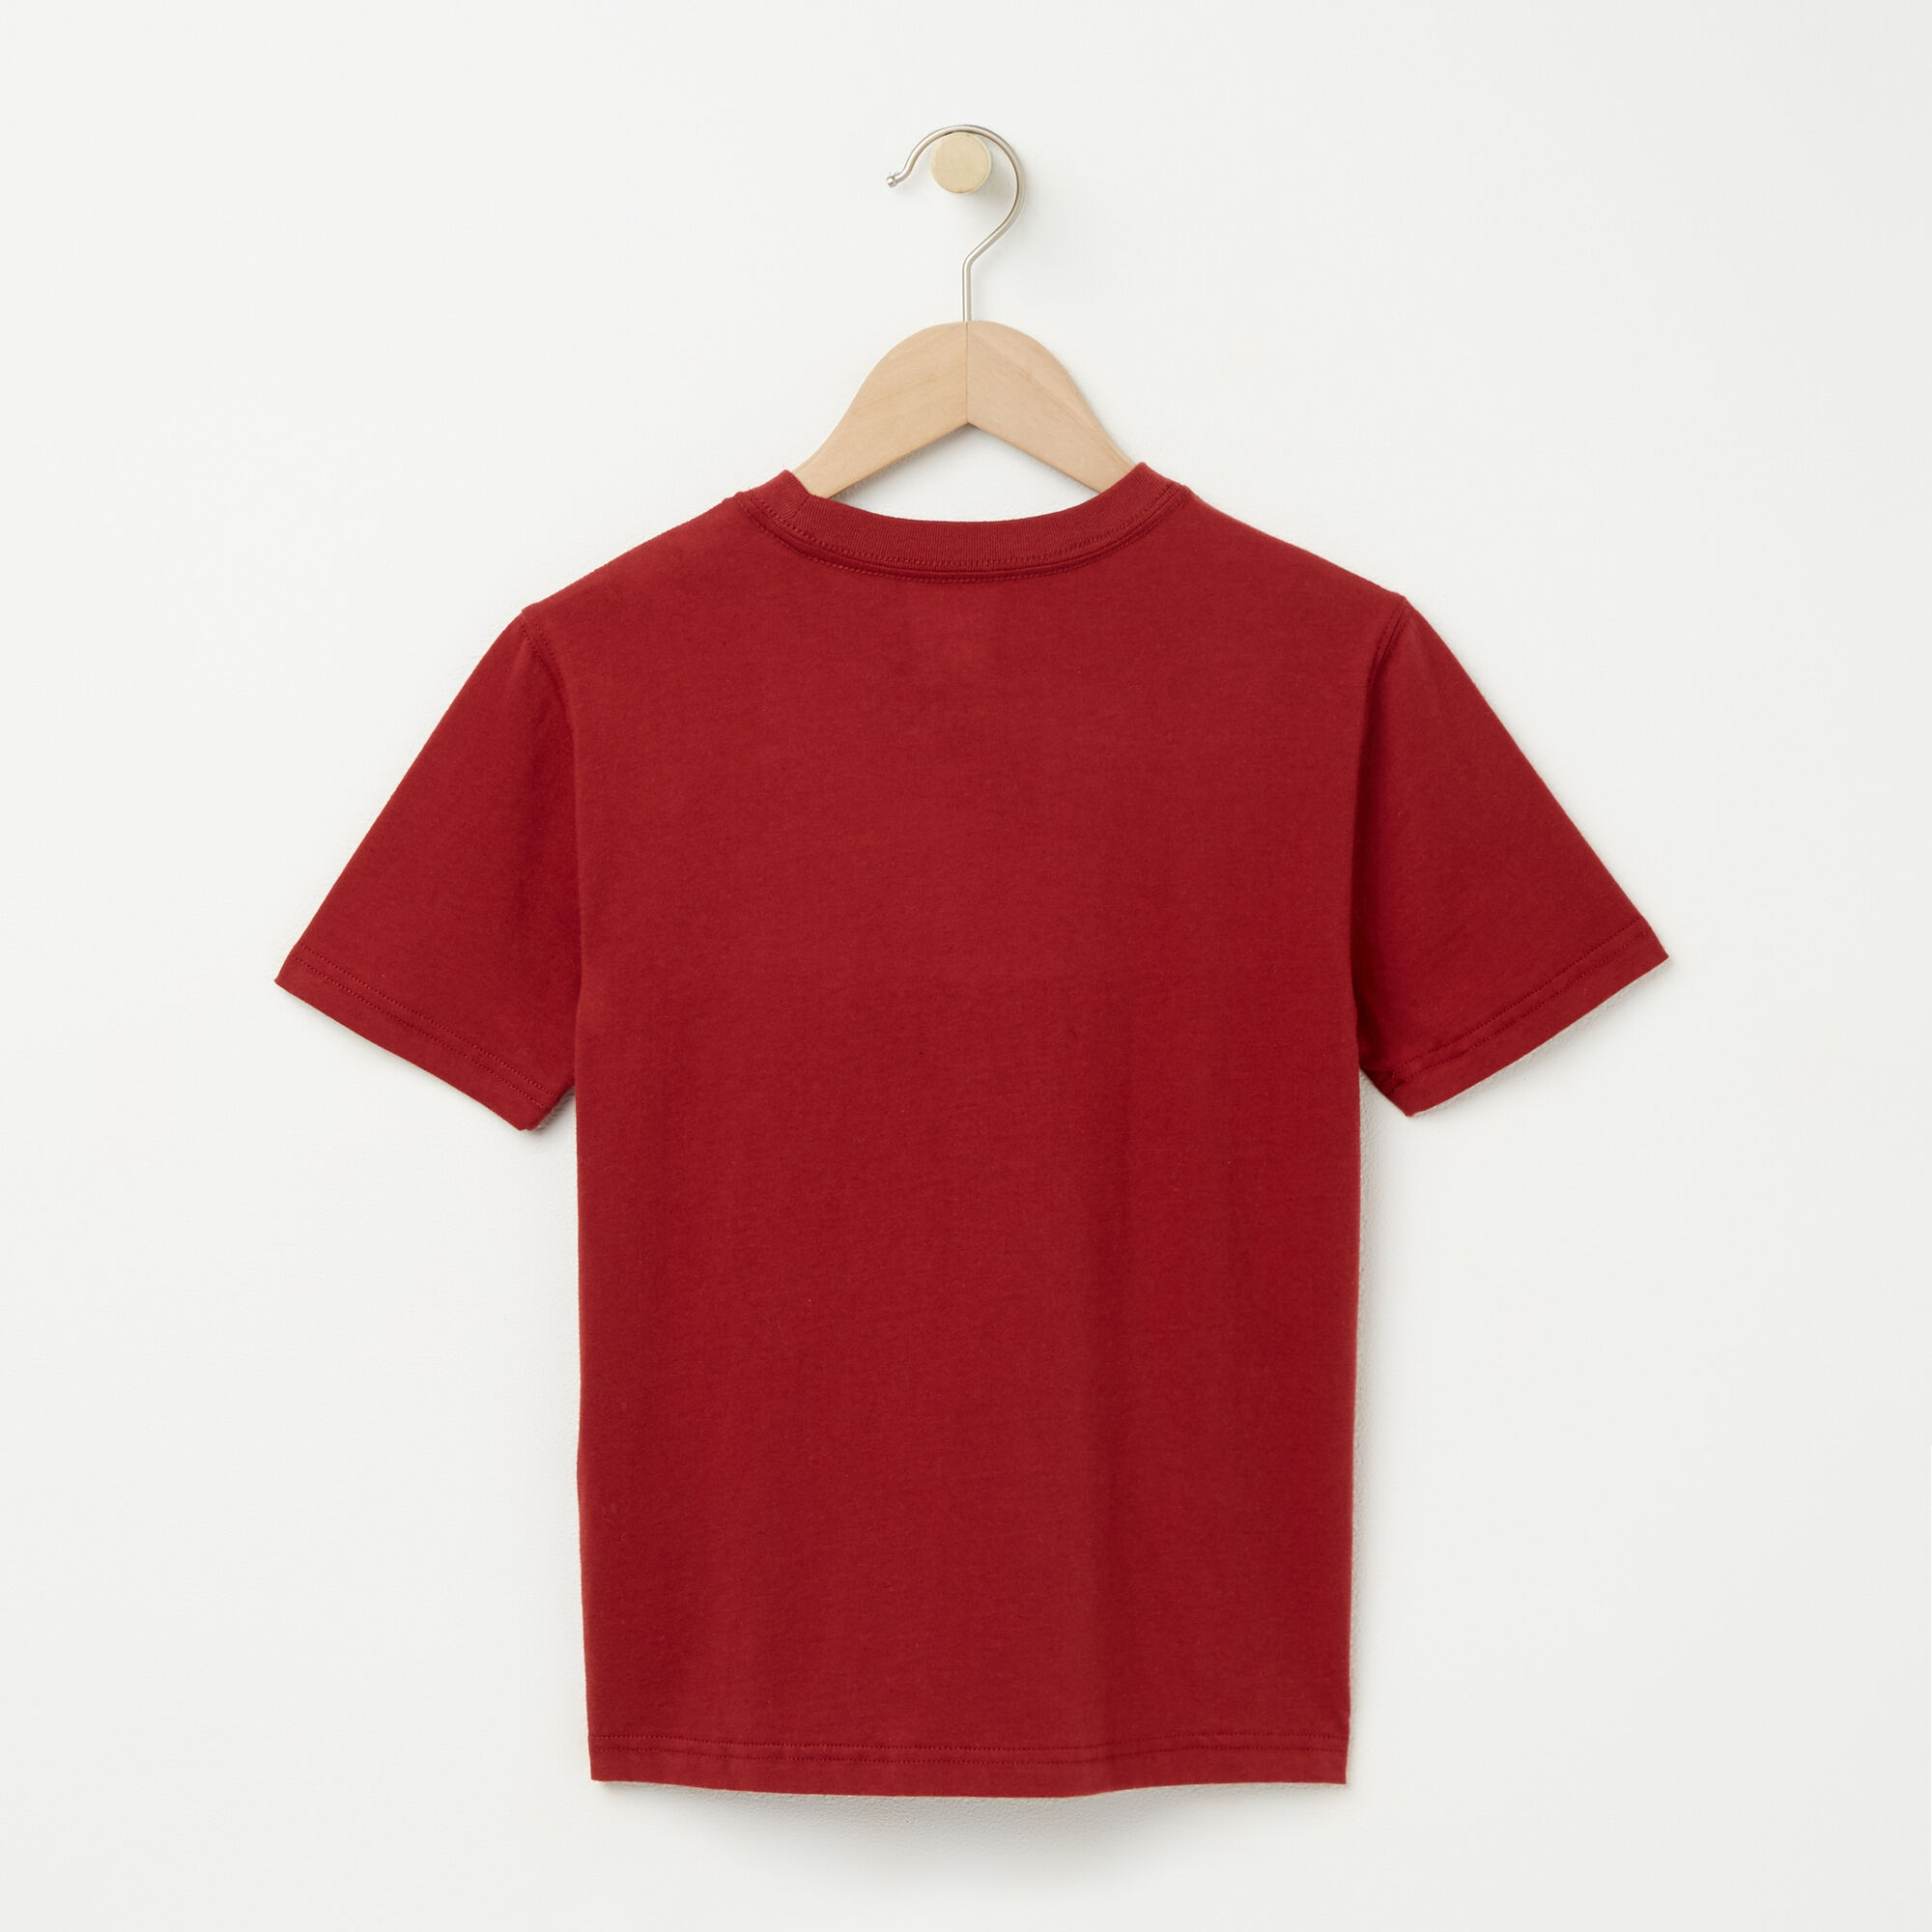 Boys Smoked Meat T-shirt